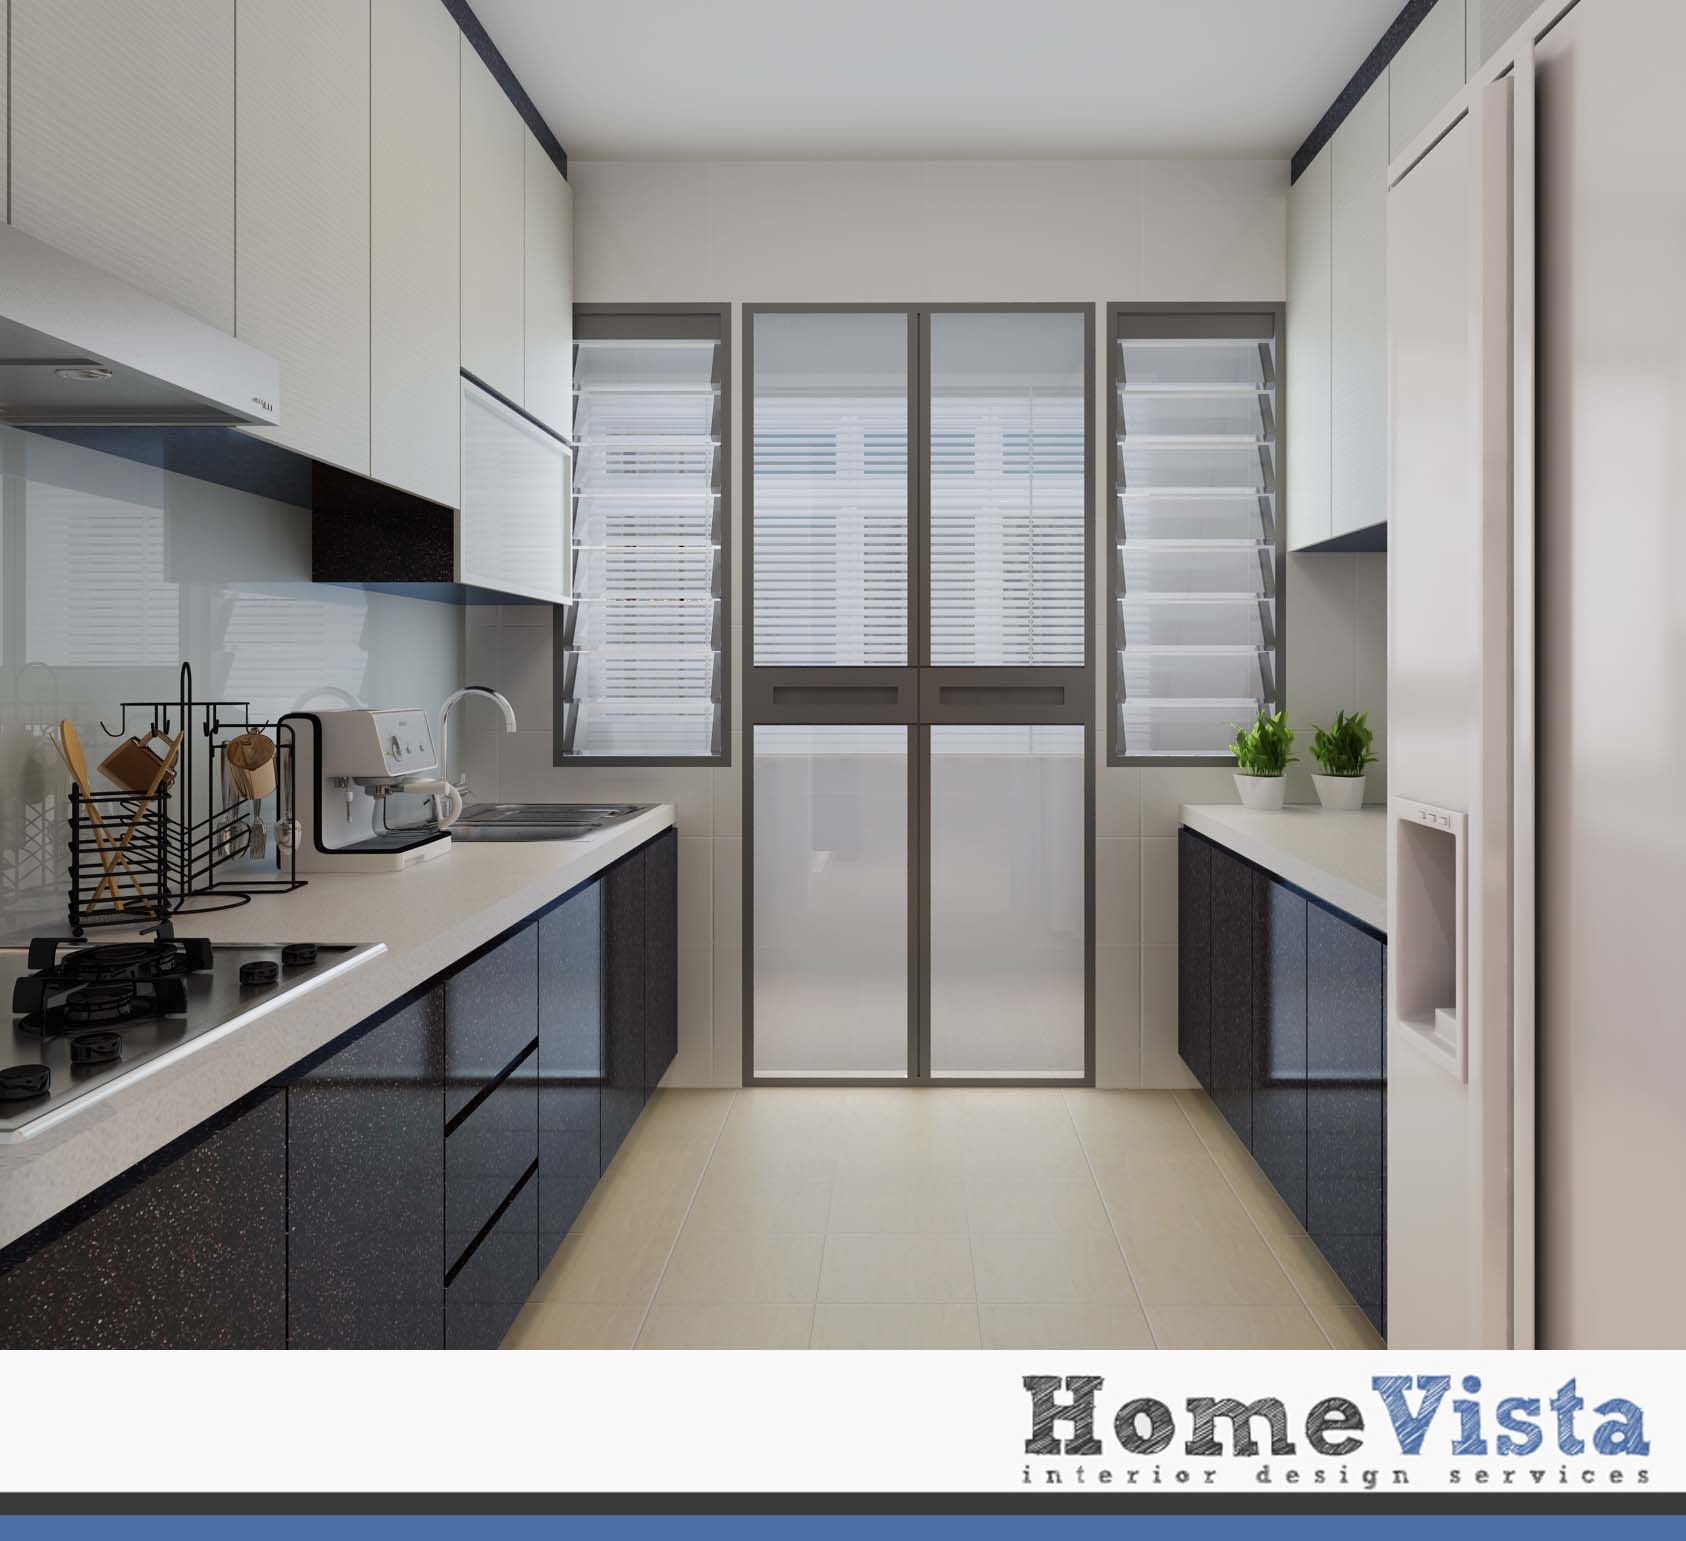 Kitchen Cabinets Singapore: 4 Room BTO - Yishun HDB BTO - HomeVista